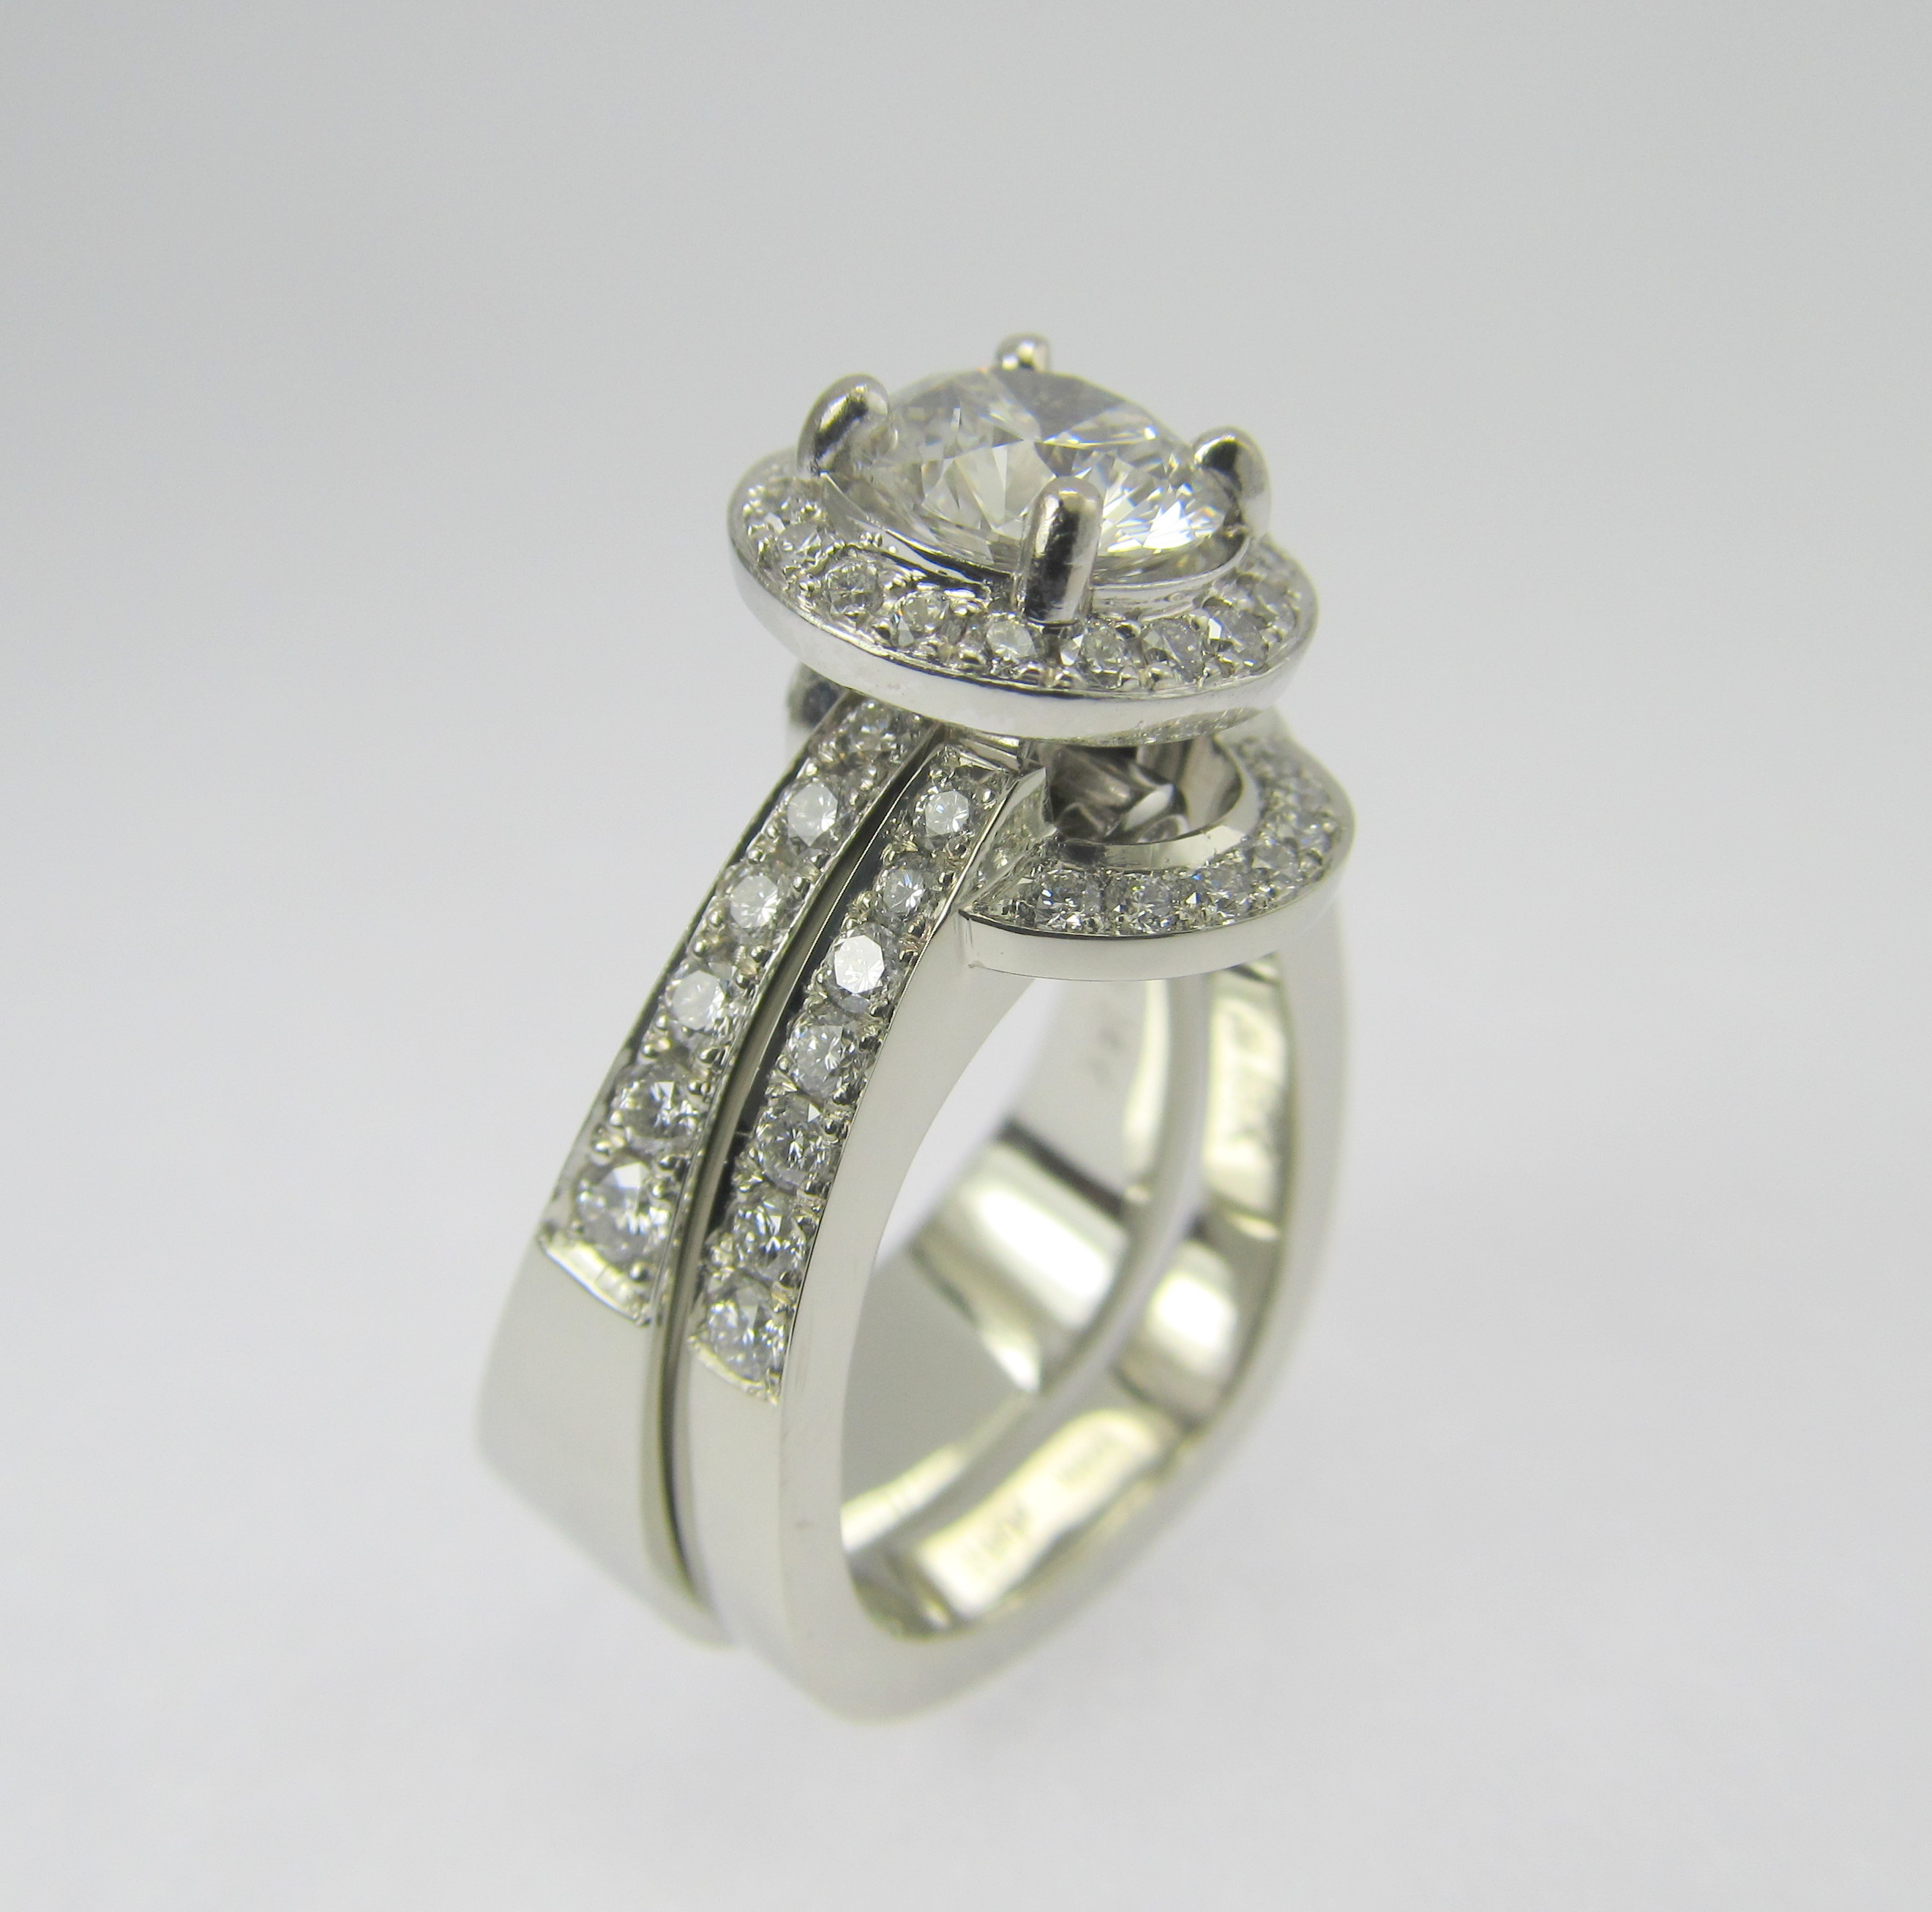 pages mikko bridal custom jewelry rings jewellery engagement made